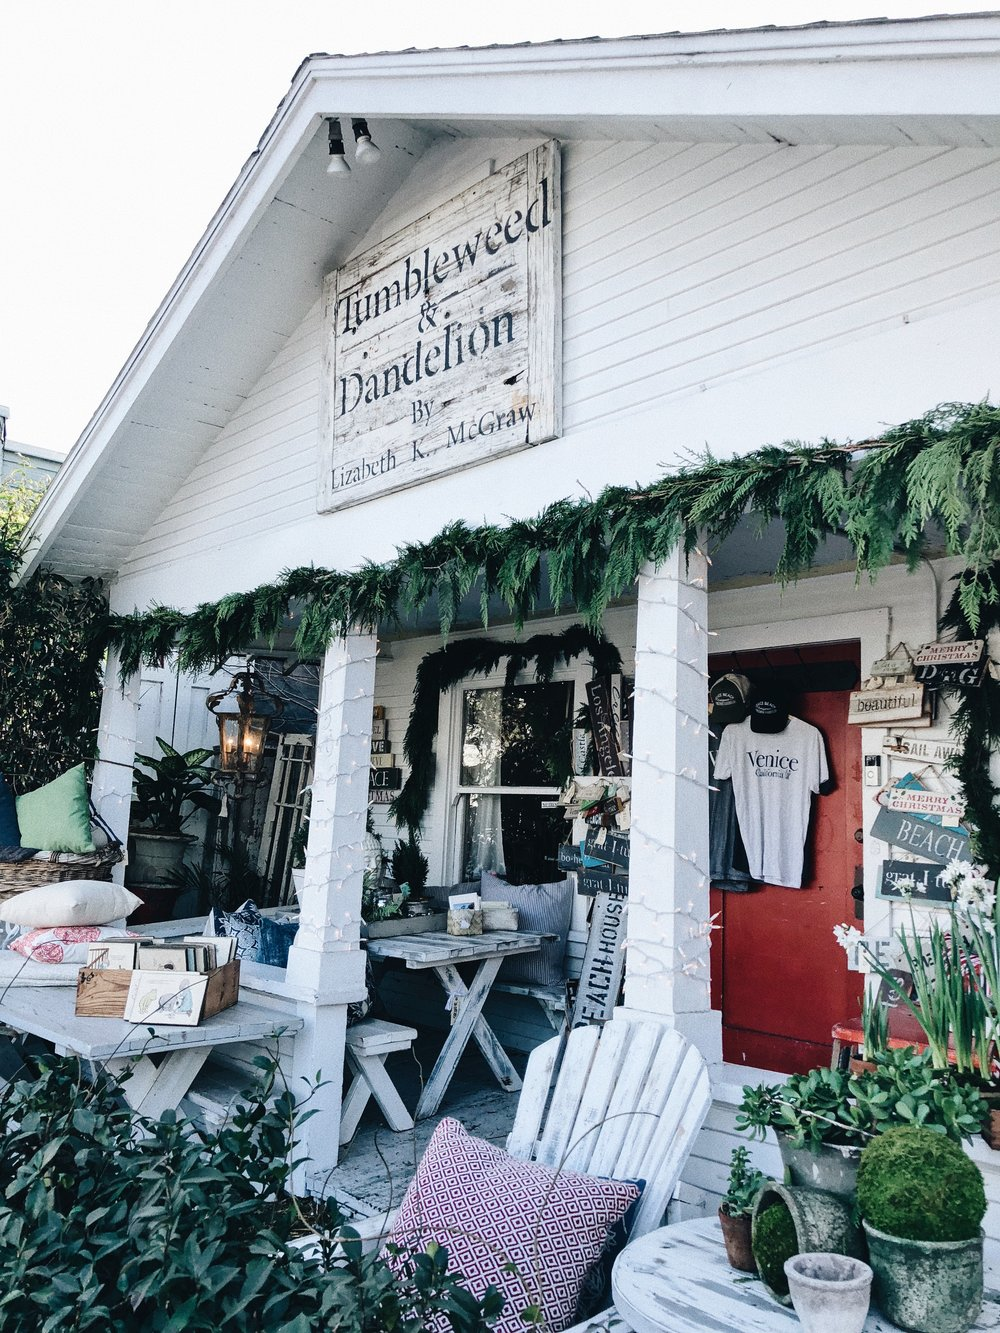 - Tumbleweed & Dandylion makes the yummiest, handcrafted, soy candles with the most unique scents. They also offer custom home furnishings and home decor that are all handcrafted in America. When you walk in, you'll feel right at home with their cute decor and cozy set up.